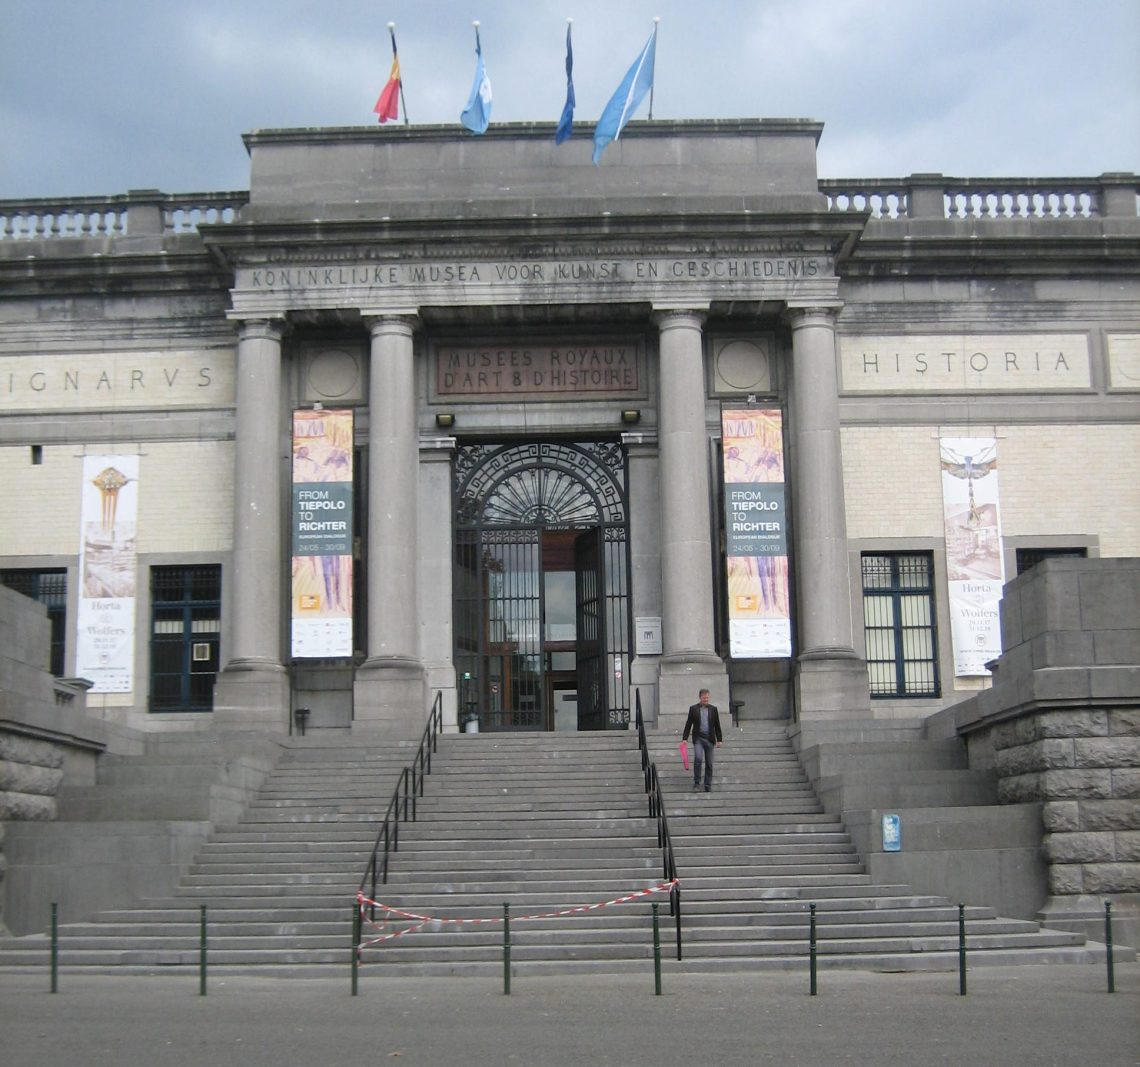 Jubelparkmuseum, Brussel. Foto Esther Doornbusch, juni 2018, CC BY 4.0